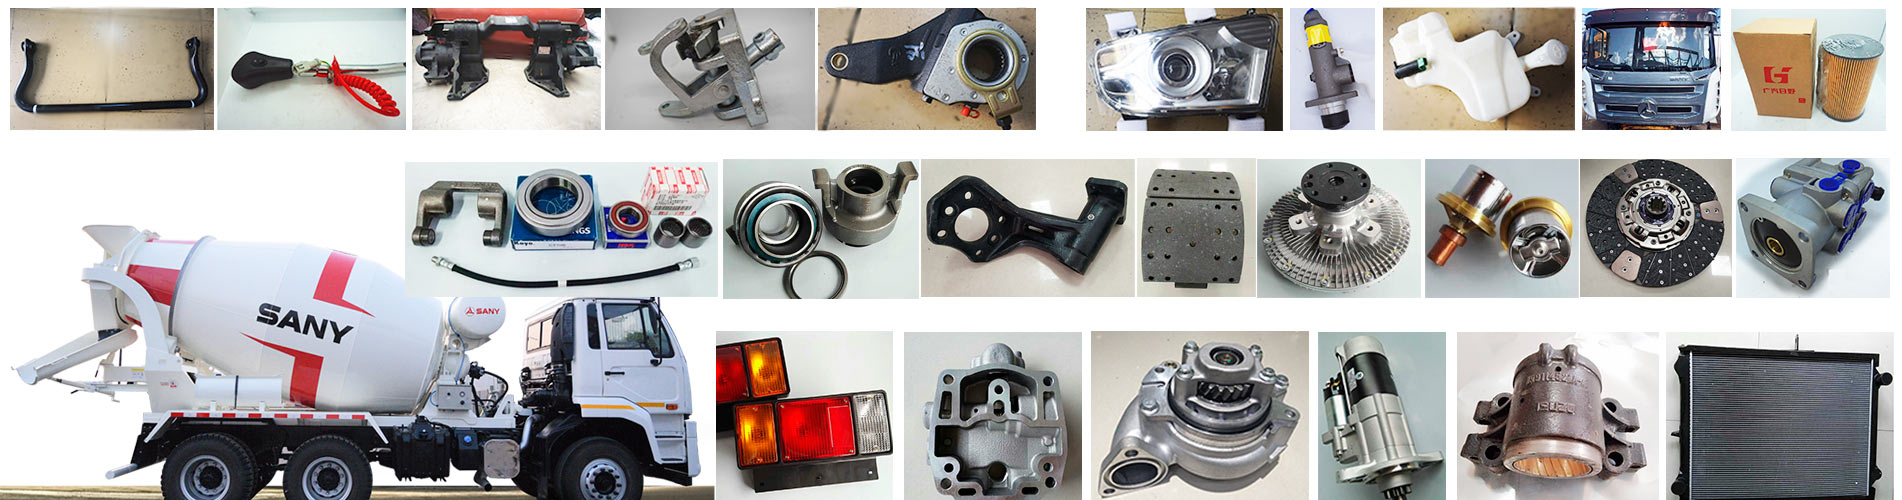 Sany Mixer Truck Parts Manufacturer